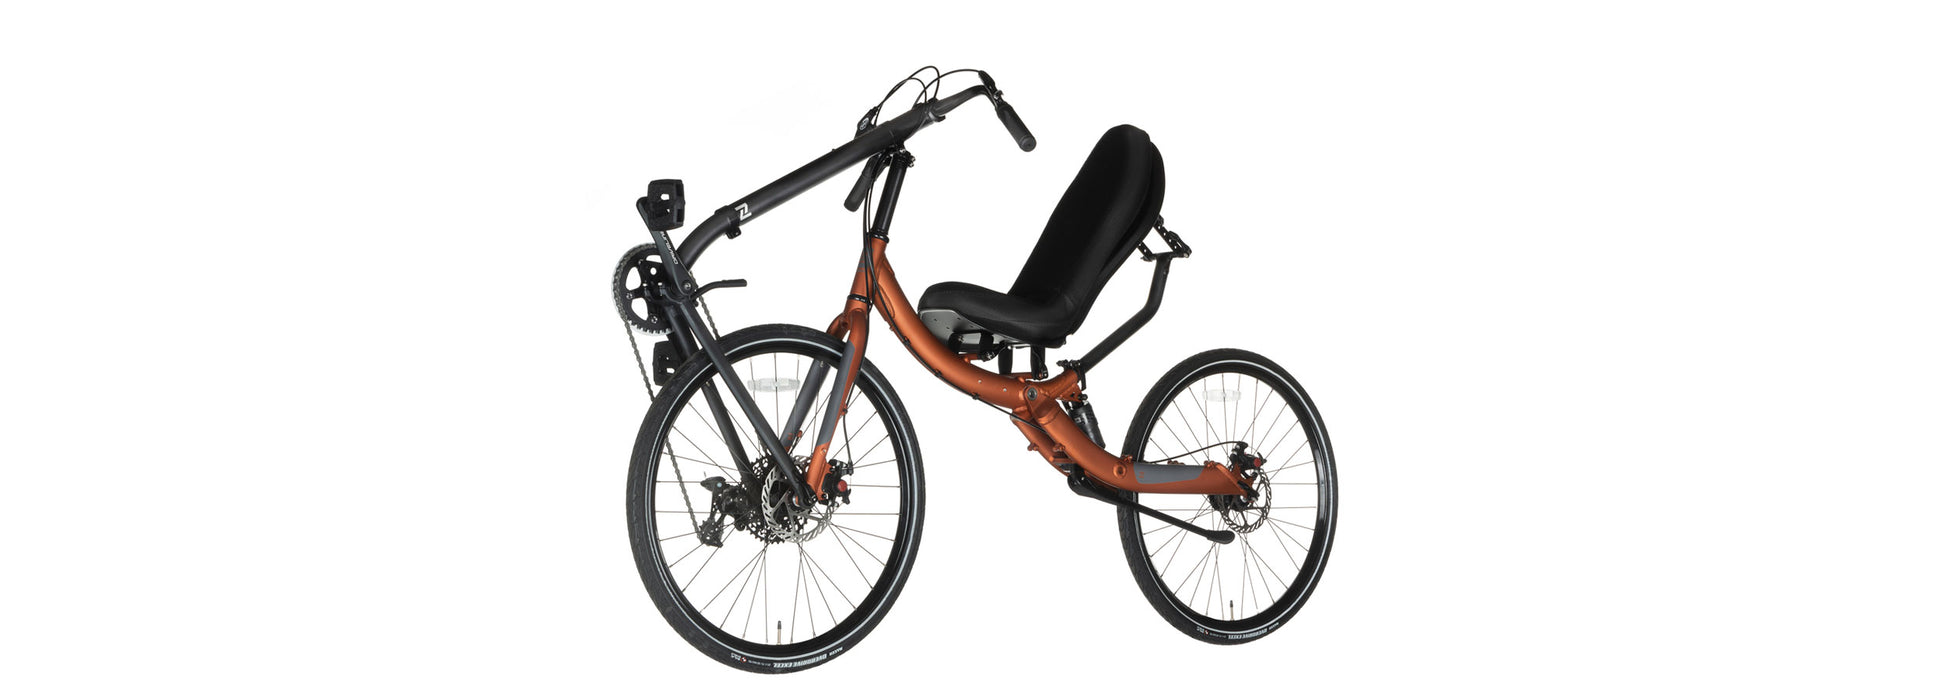 Cruzbike Q45 adventure touring recumbent bike